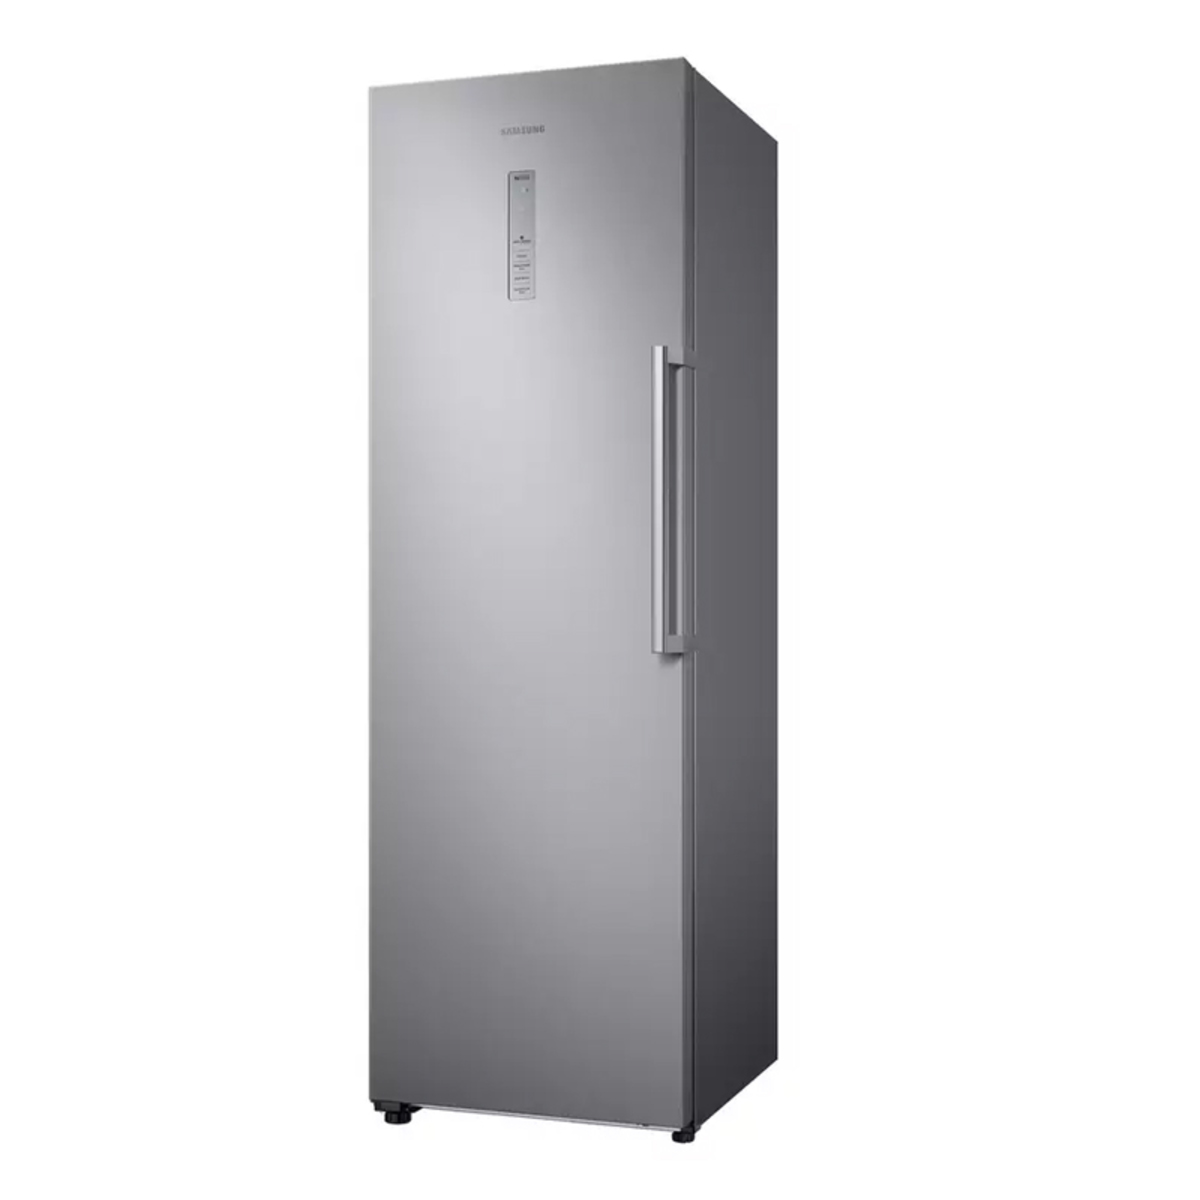 Samsung RZ32M7125SA Tall Freezer with All Around Cooling, 315L, Silver